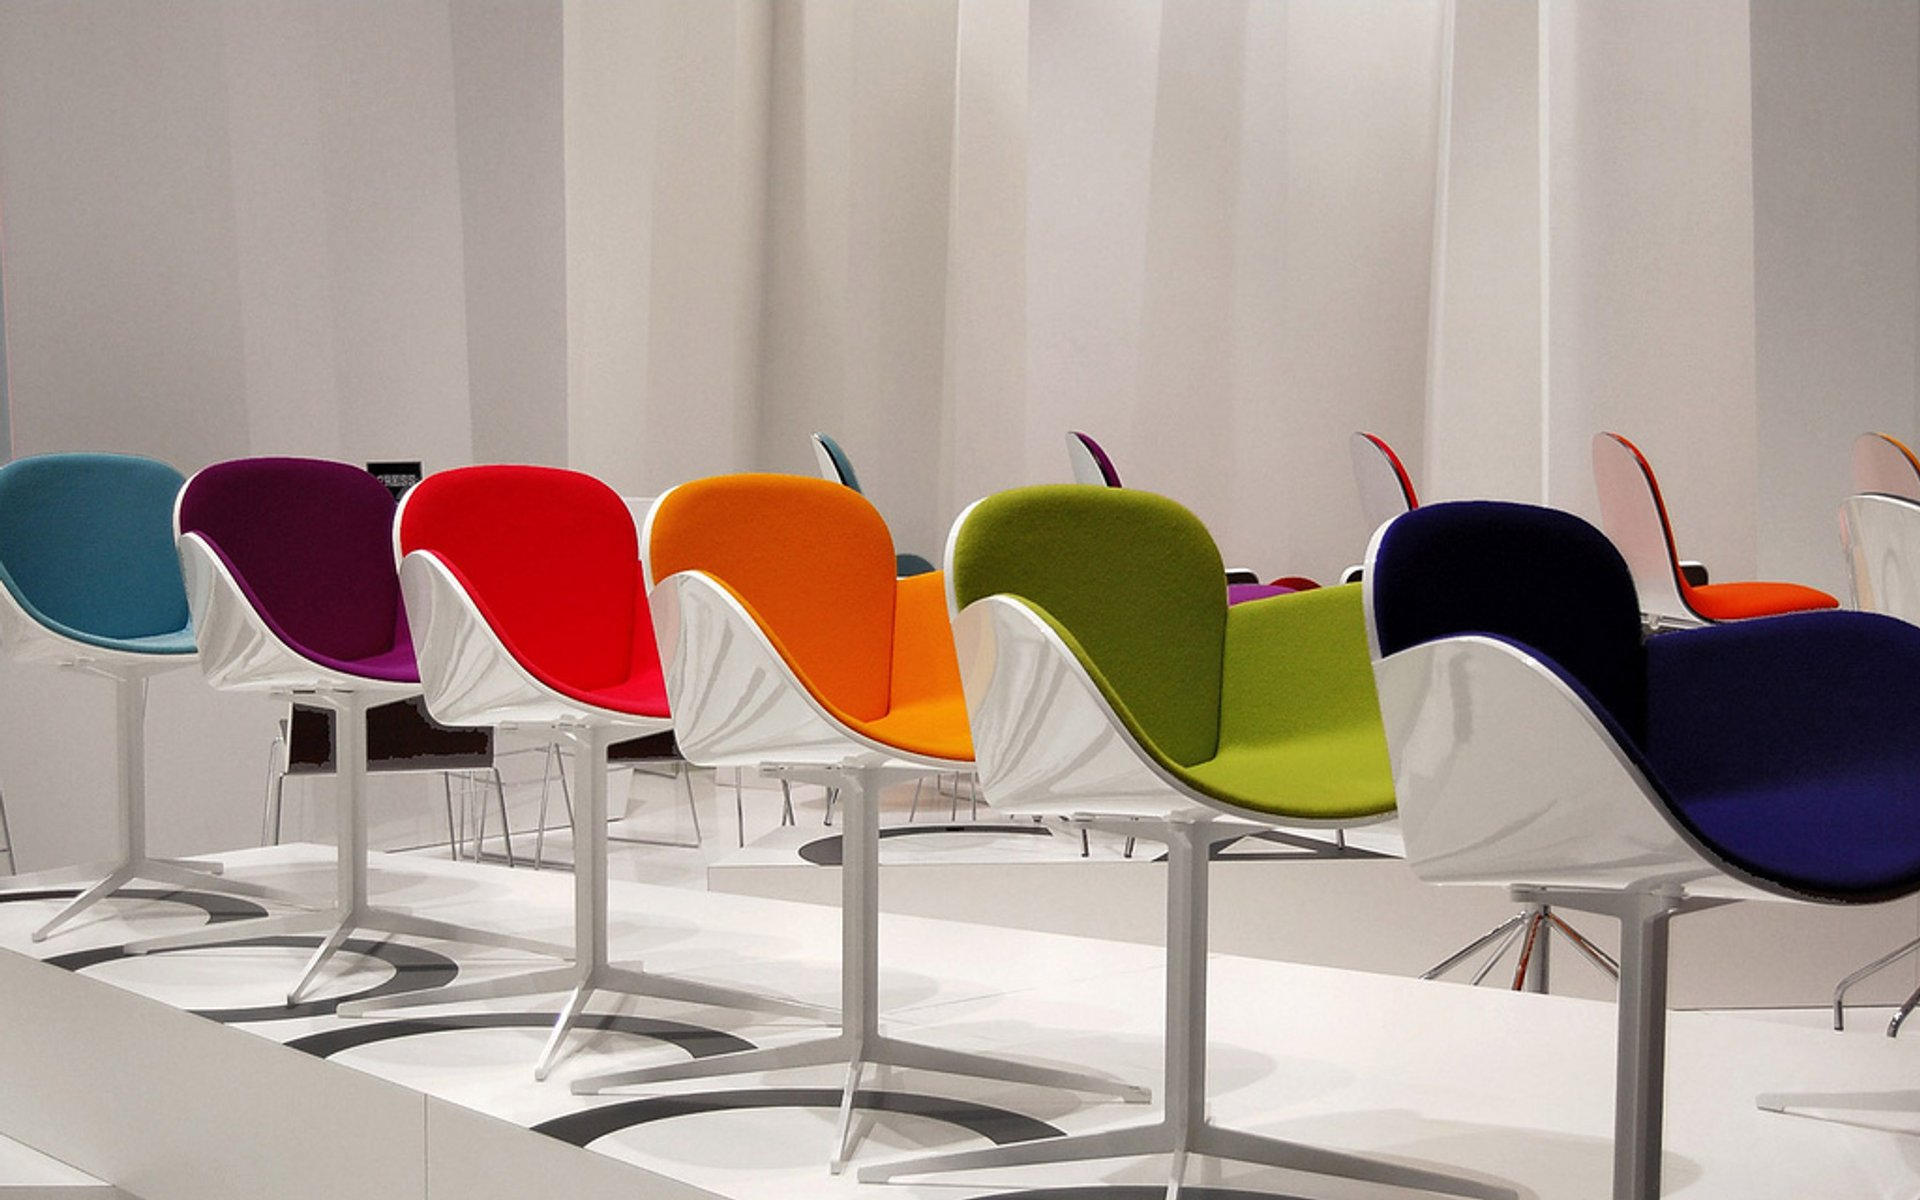 Salone del mobile milan furniture fair 2020 dates map for Mobile furniture design